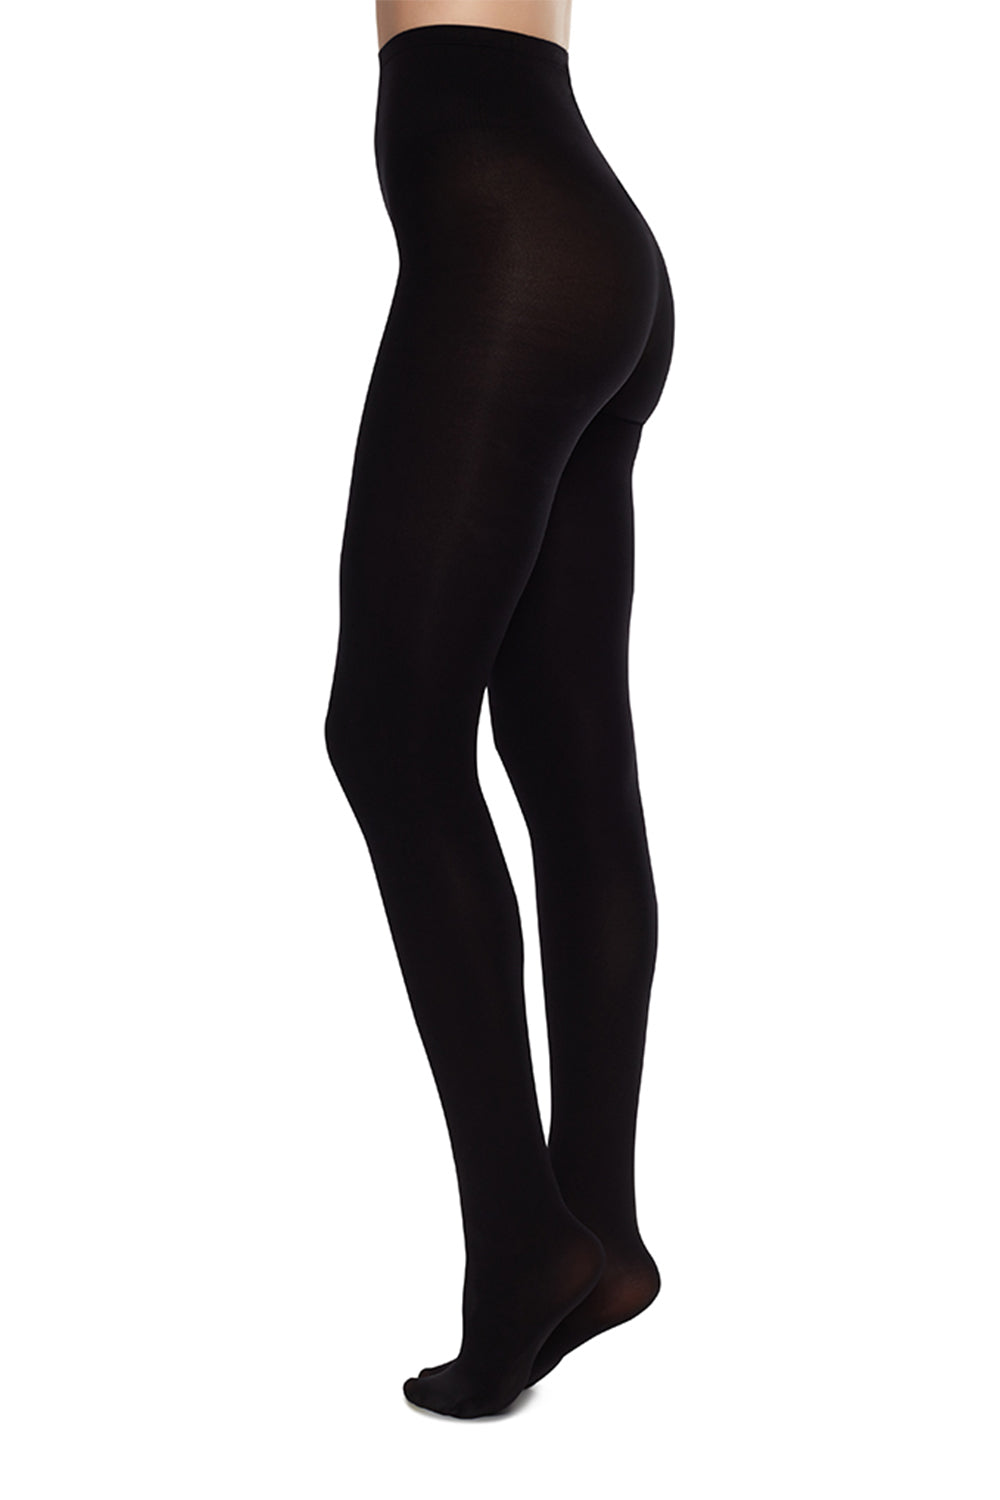 Lia Premium 100 Denier Tights in Black